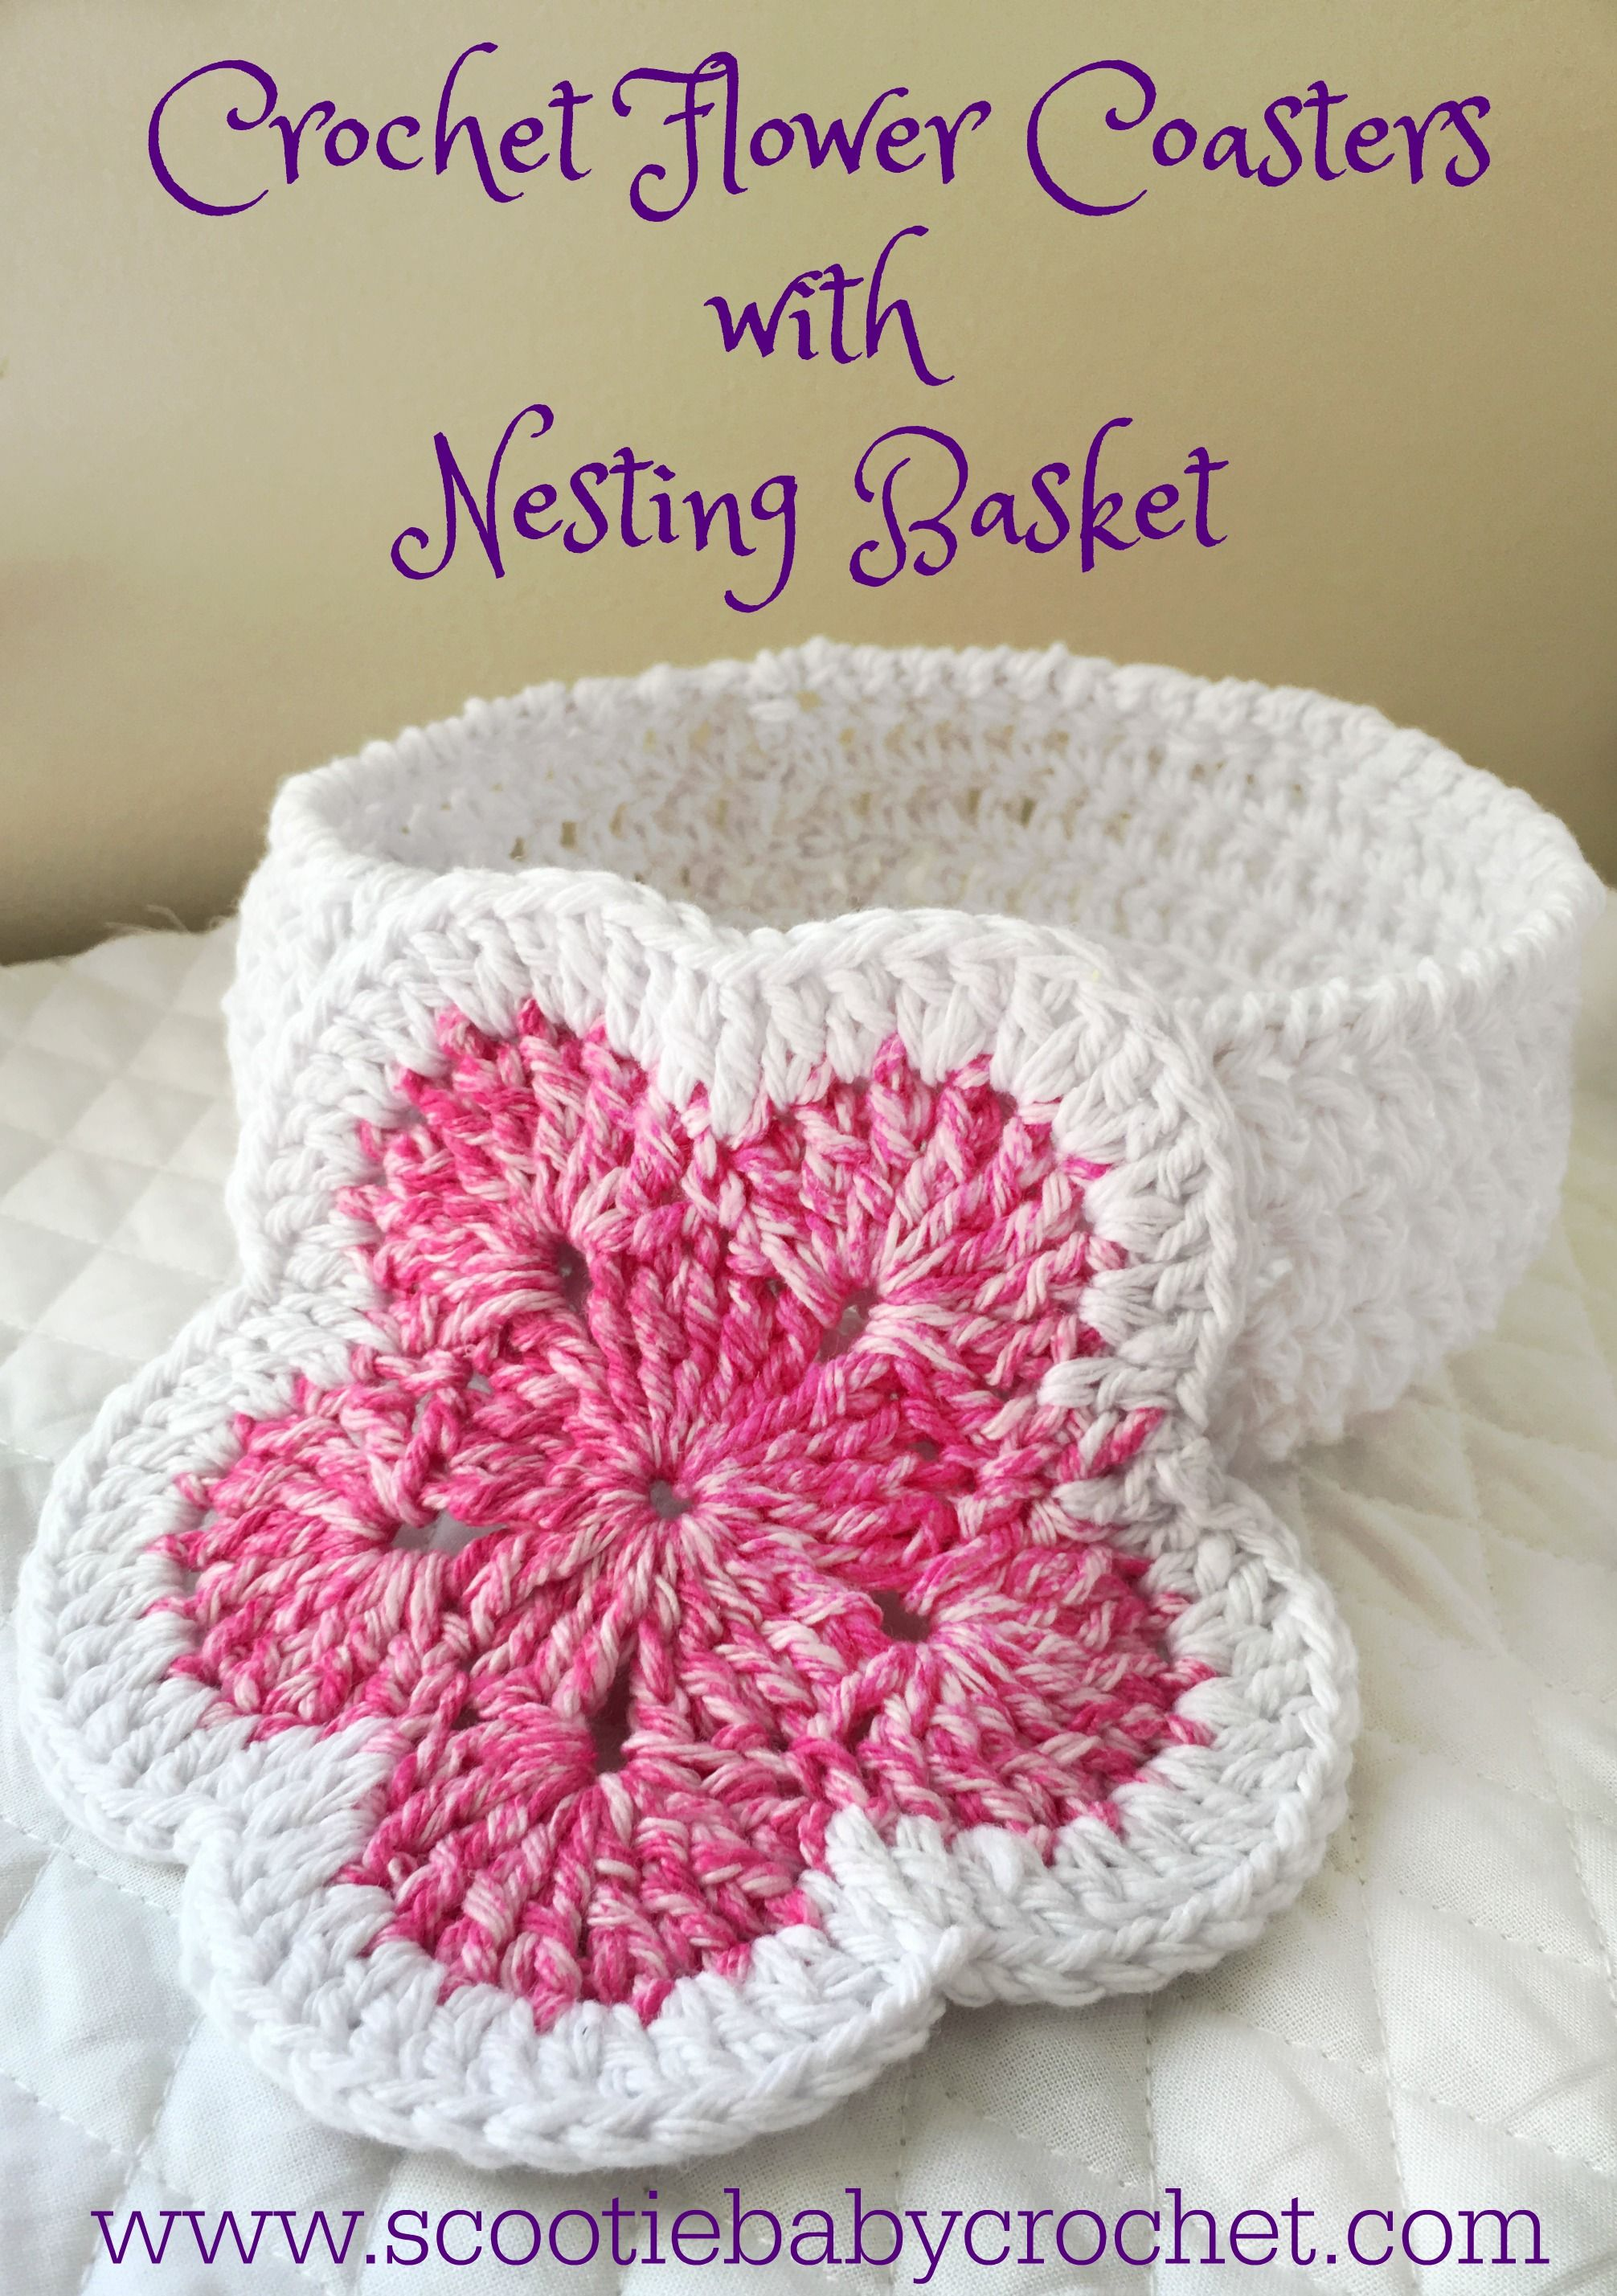 Quick Easy And Cheery Crocheted Flower Coasters With Nesting